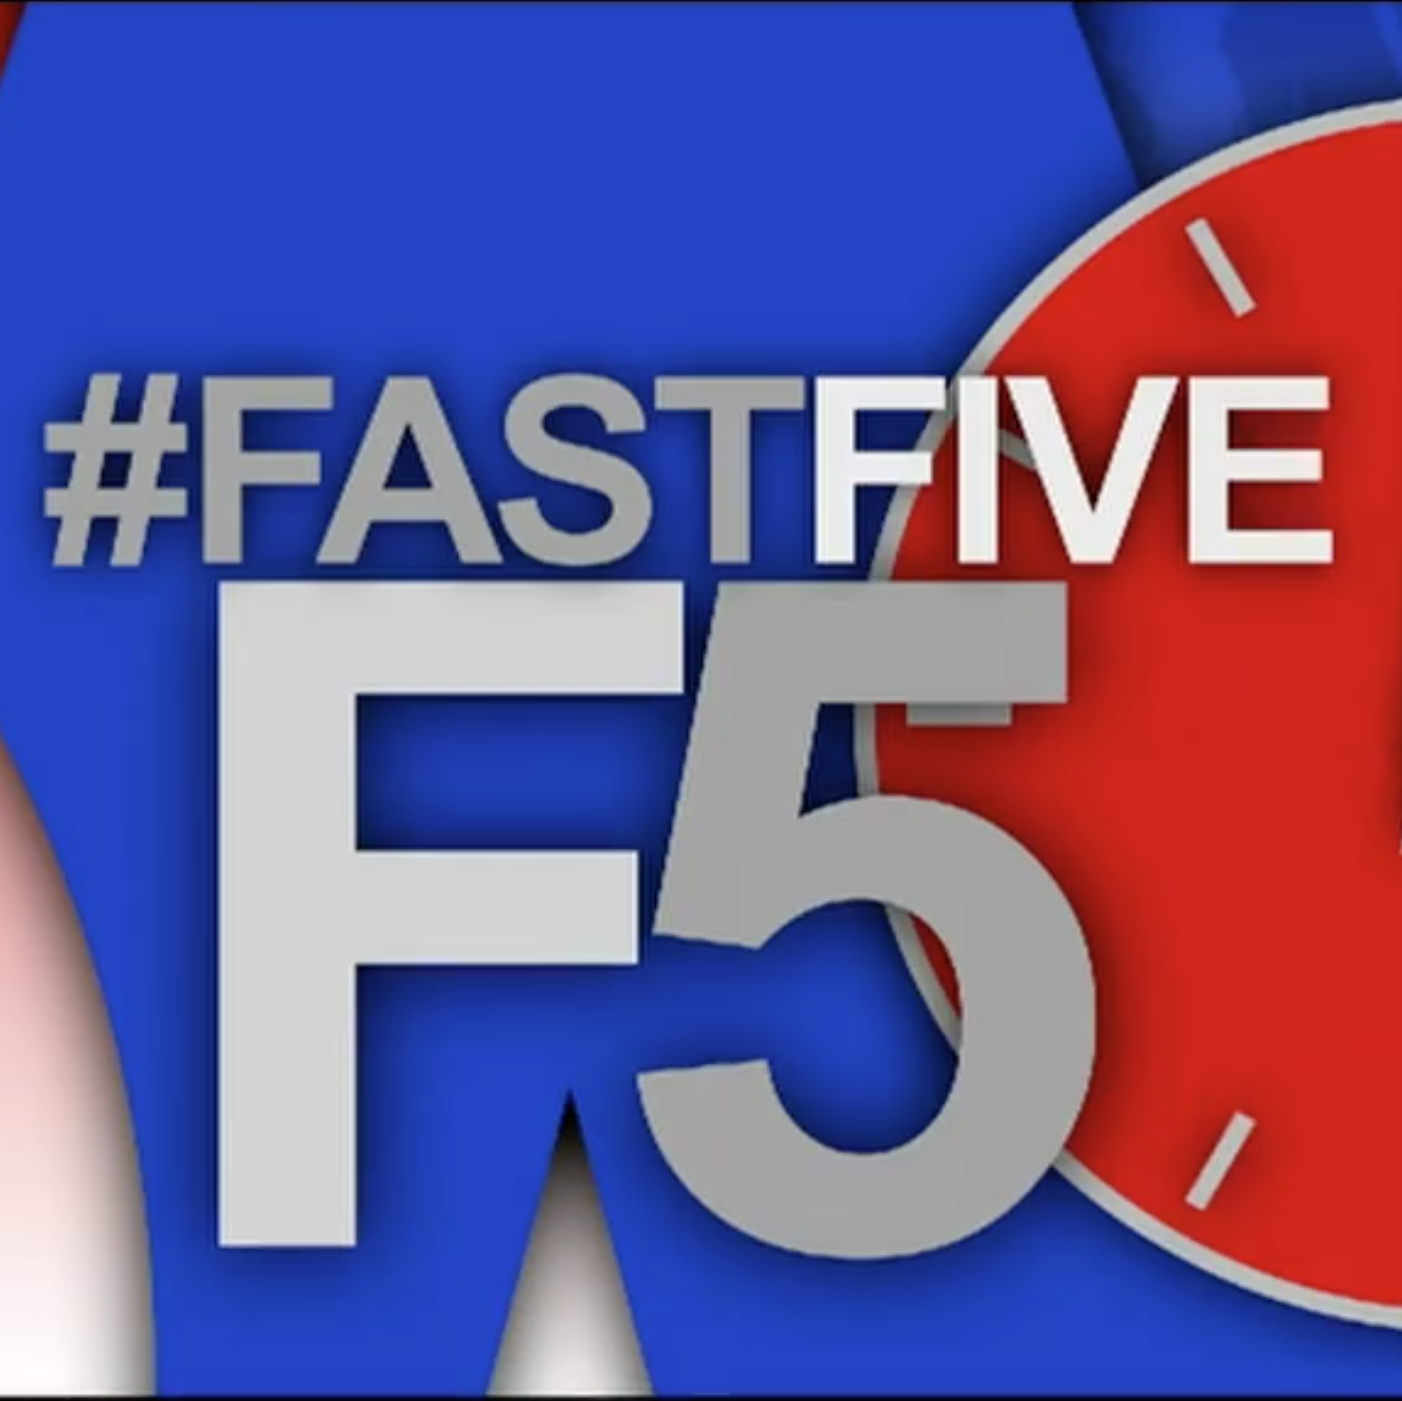 VOA Fast Five - Voice of America